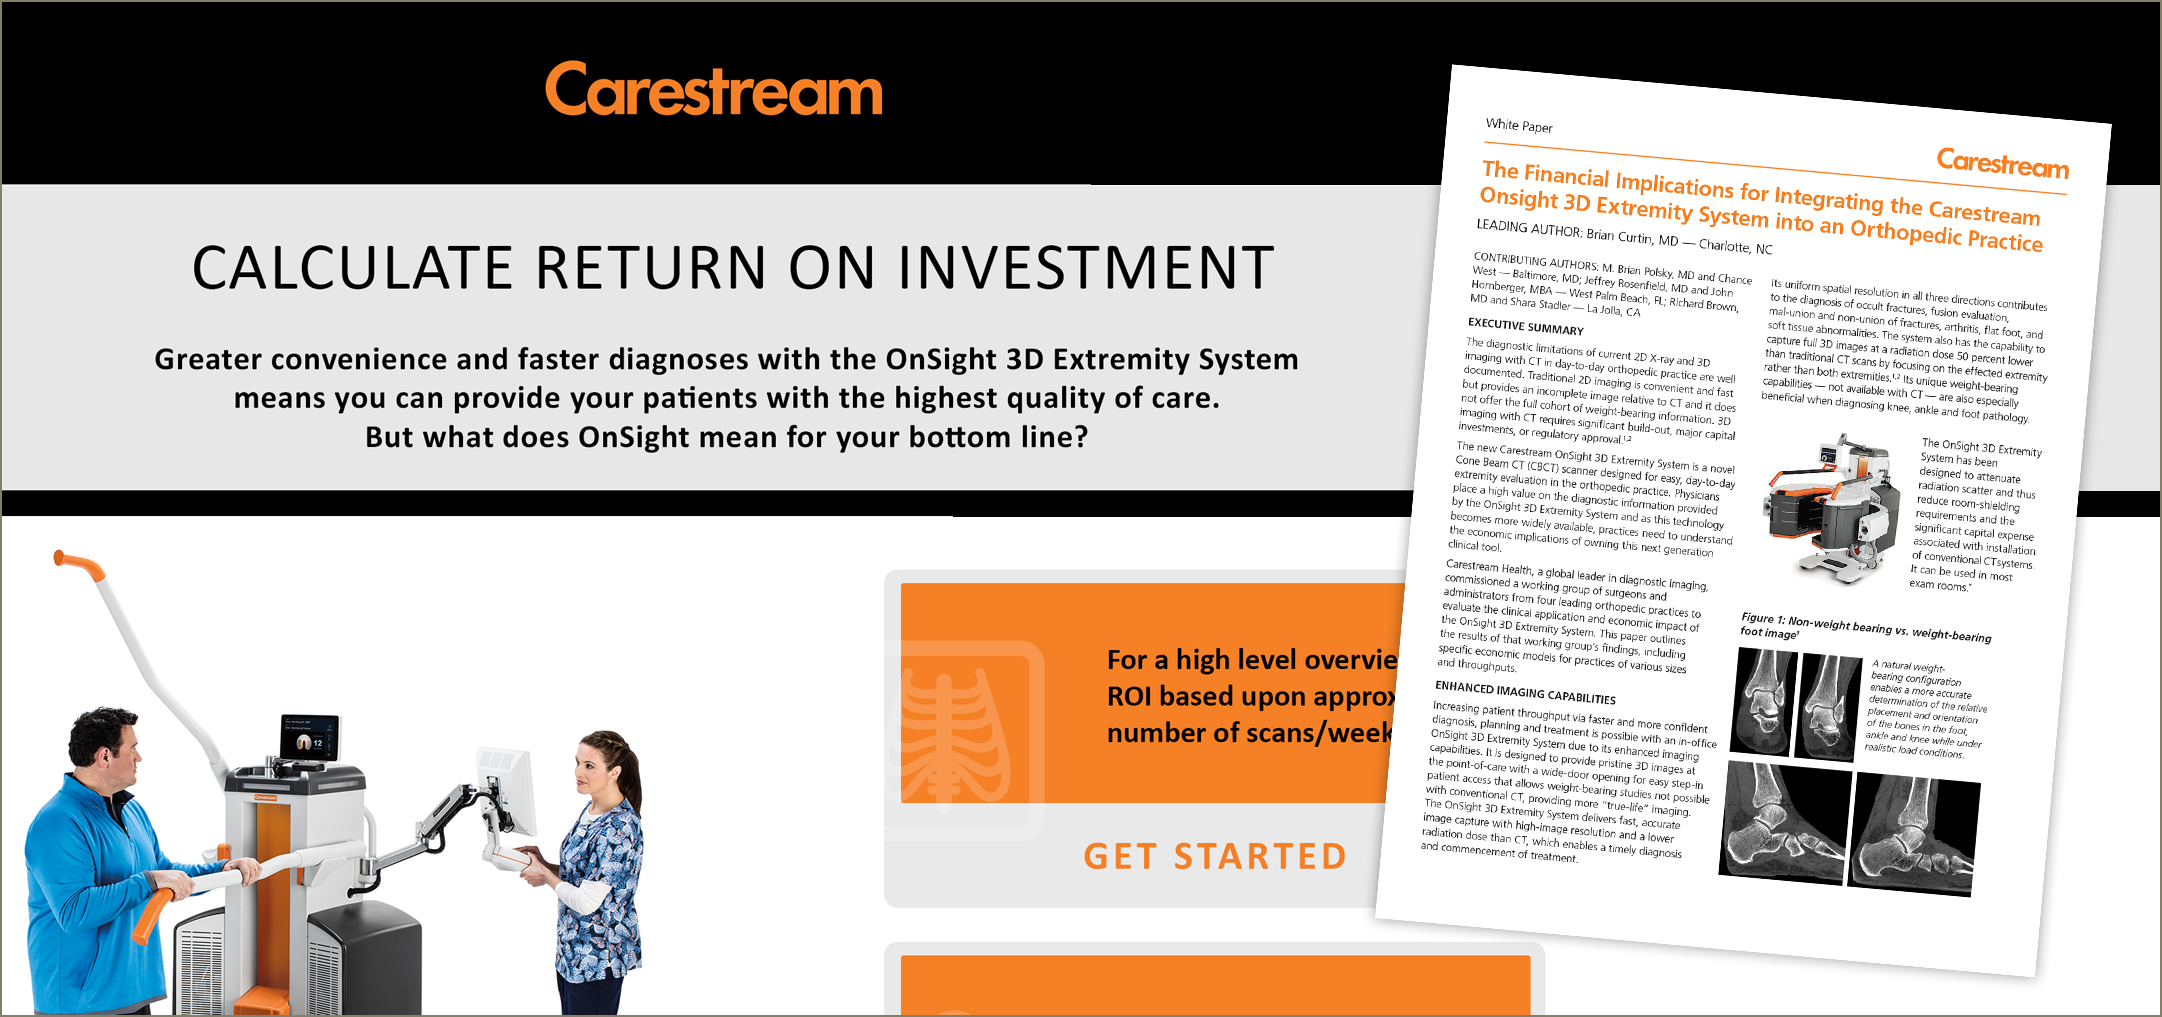 Carestream medical marketing and technology